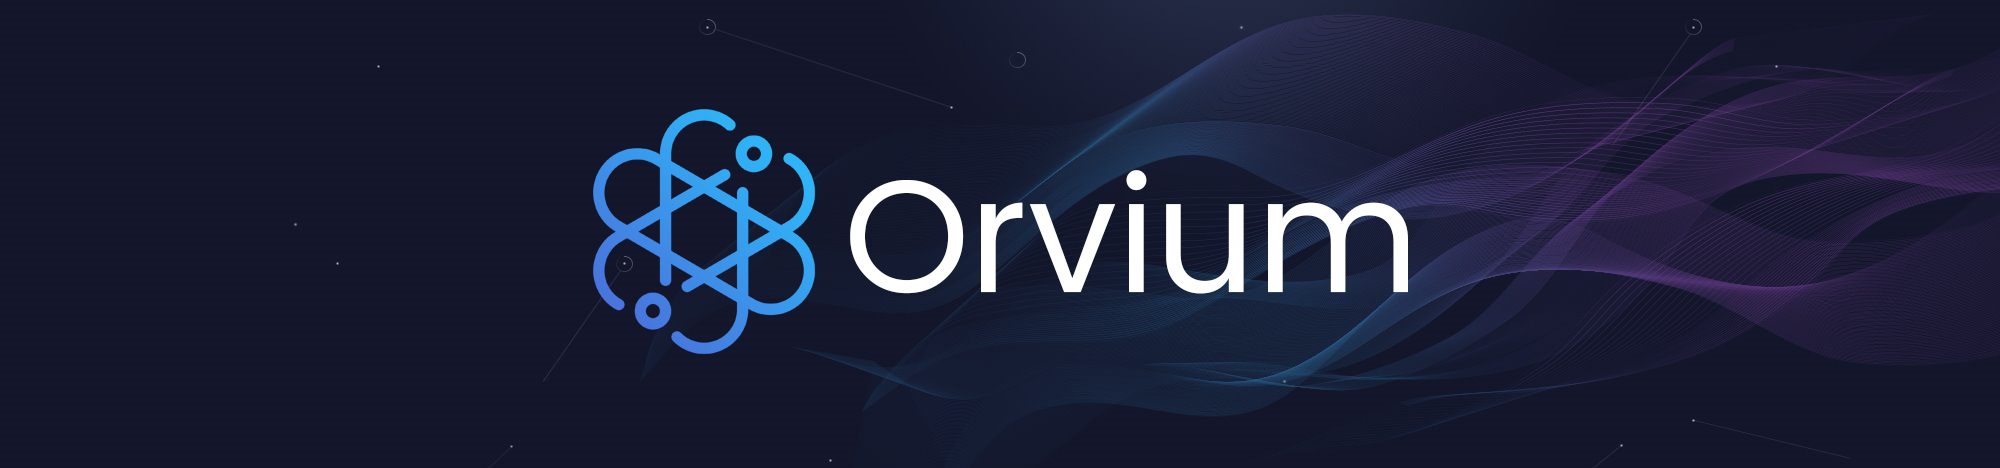 Orvium — Open and Transparent Science Powered By Blockchain